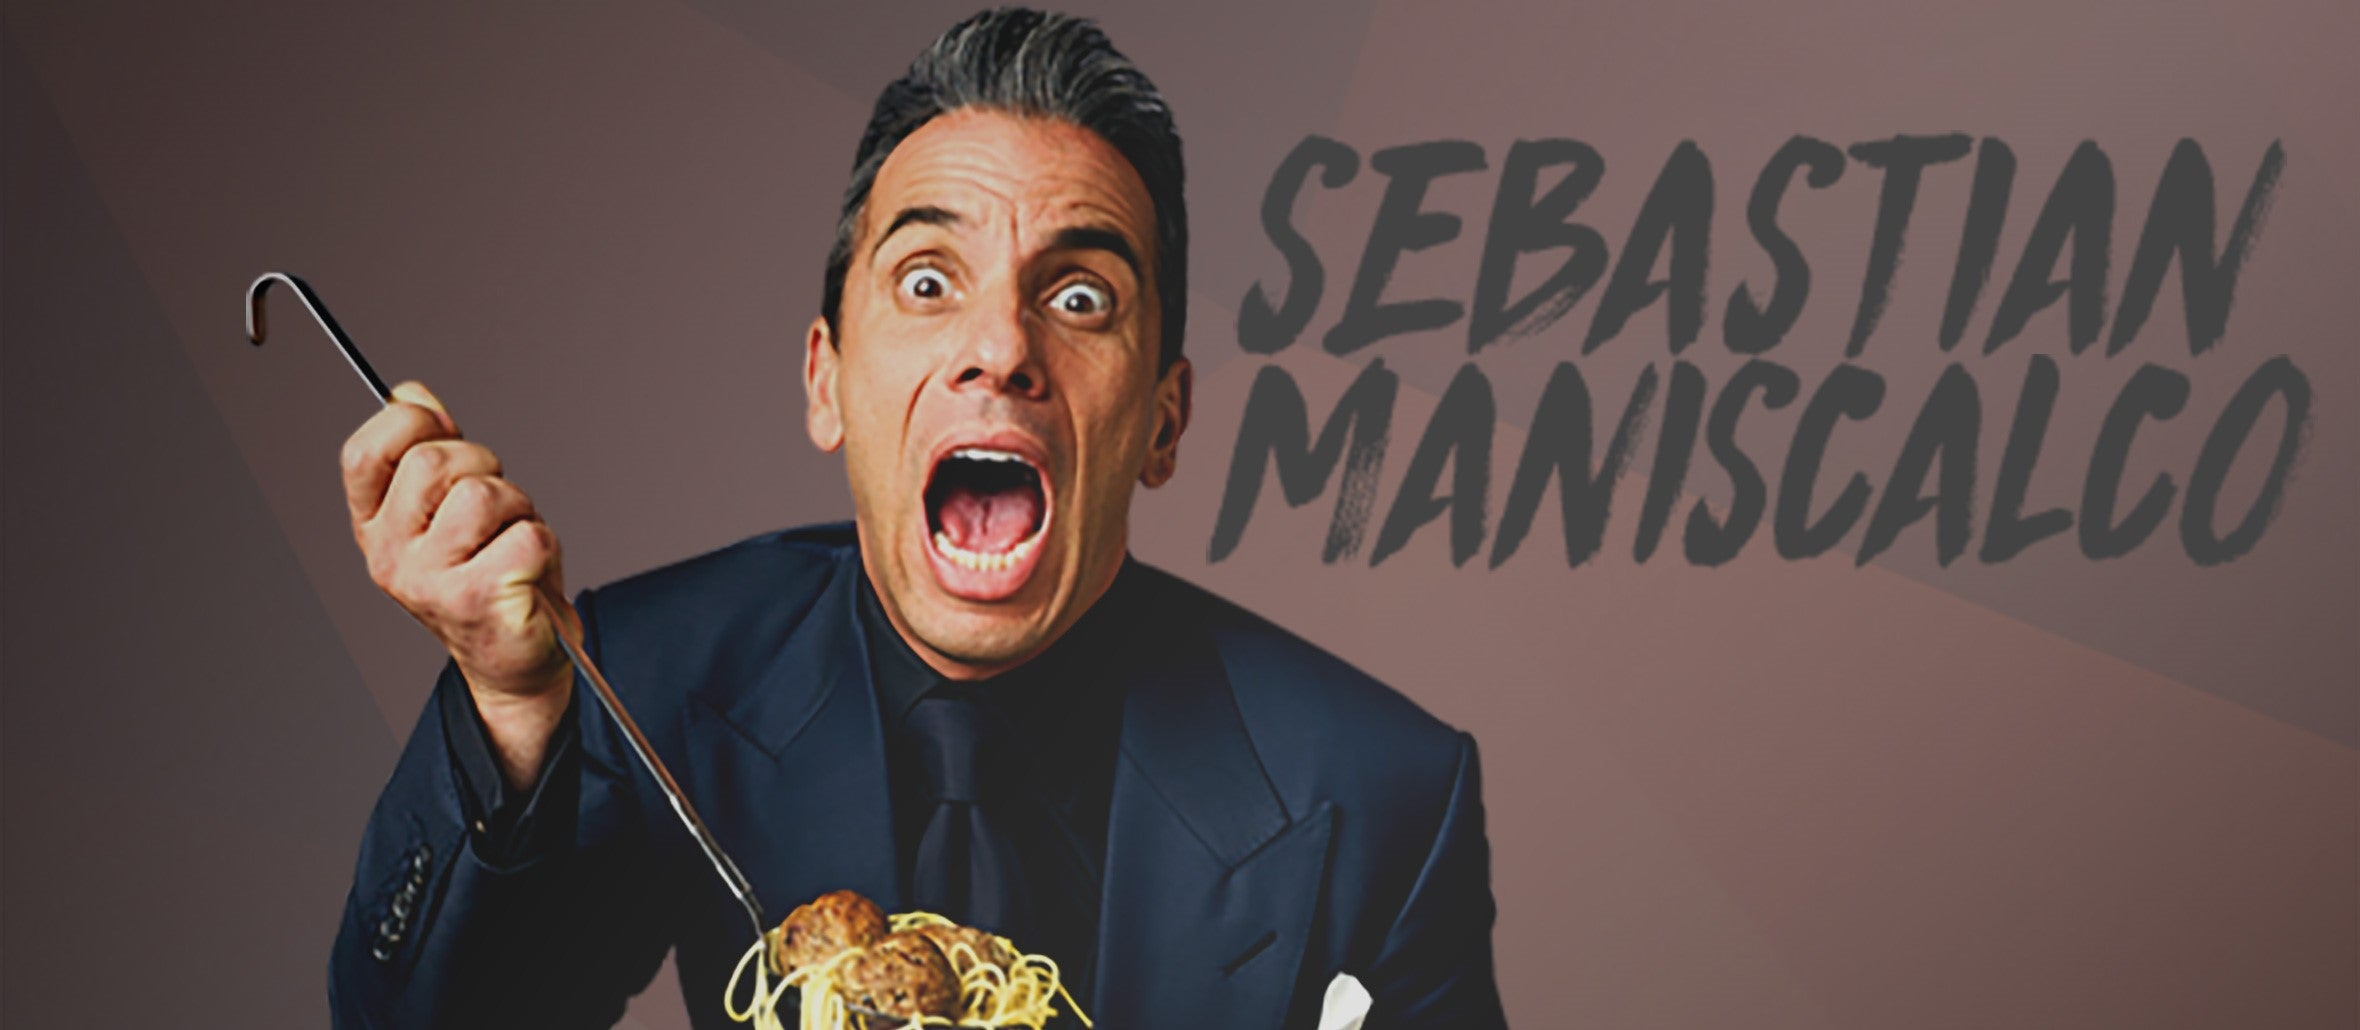 Sebastian Maniscalco | Barbara B  Mann - Performing Arts Hall